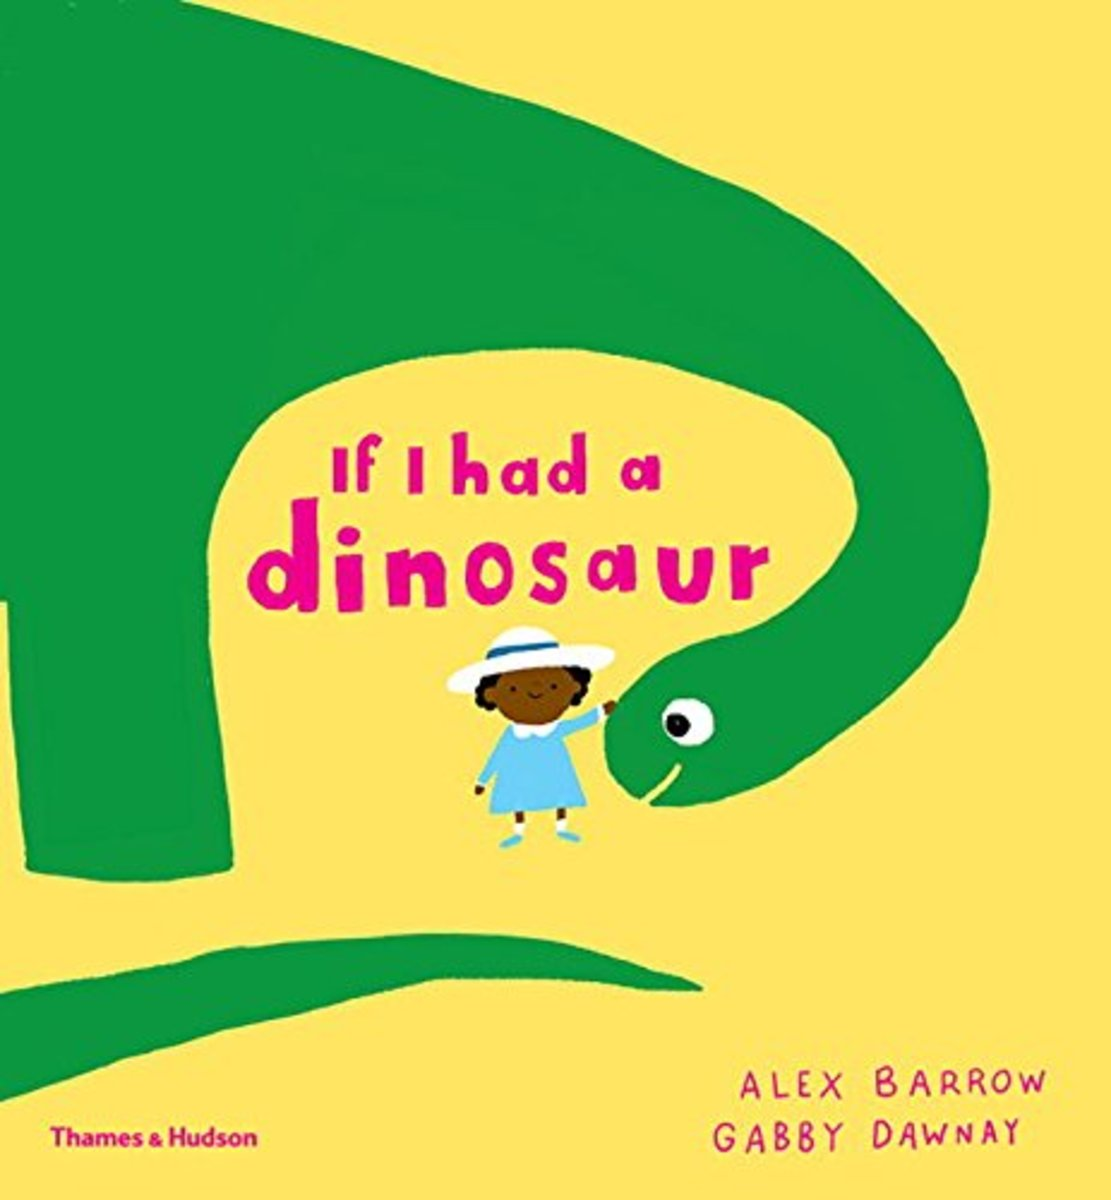 If I Had a Dinosaur by Alex Barrow